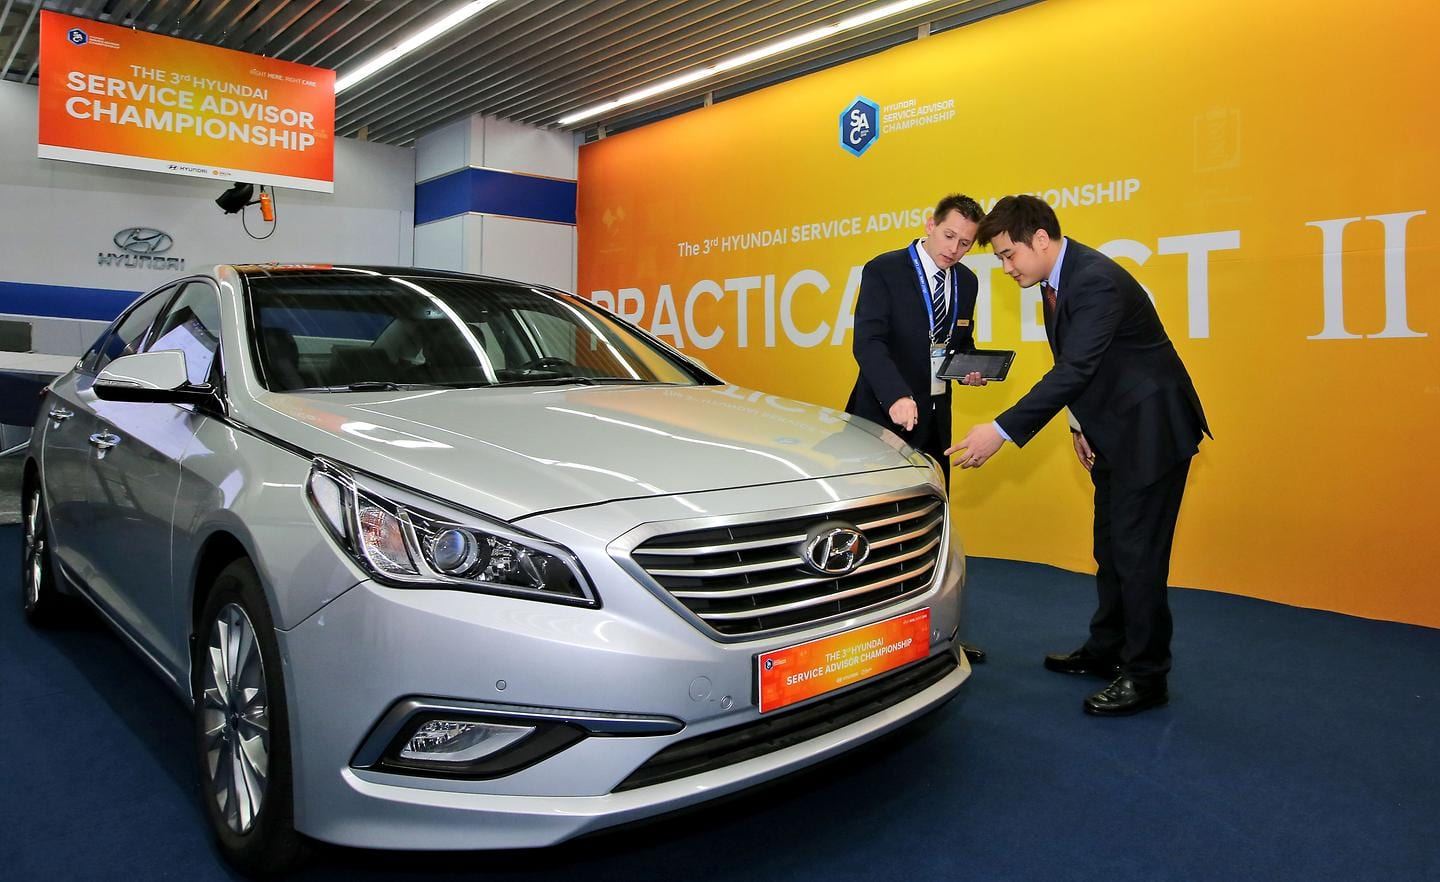 Hyundai Motor Holds the Third Service Advisor Championship in Korea to Reinforce Service Importance